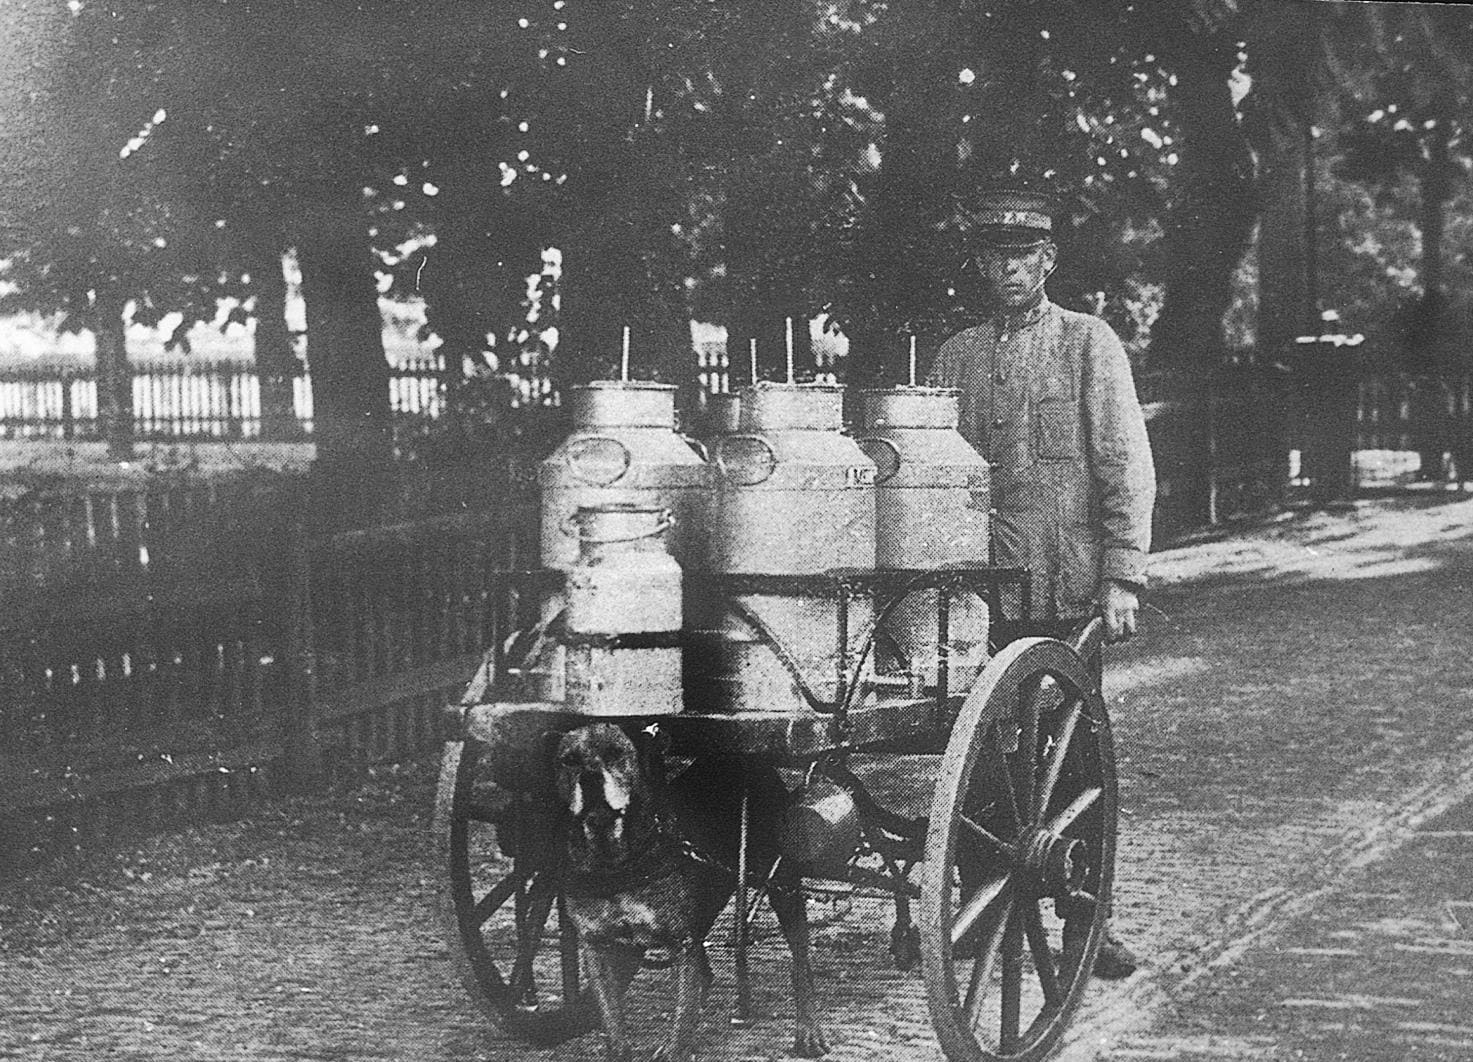 Image of a farmer pushing a cart of milk